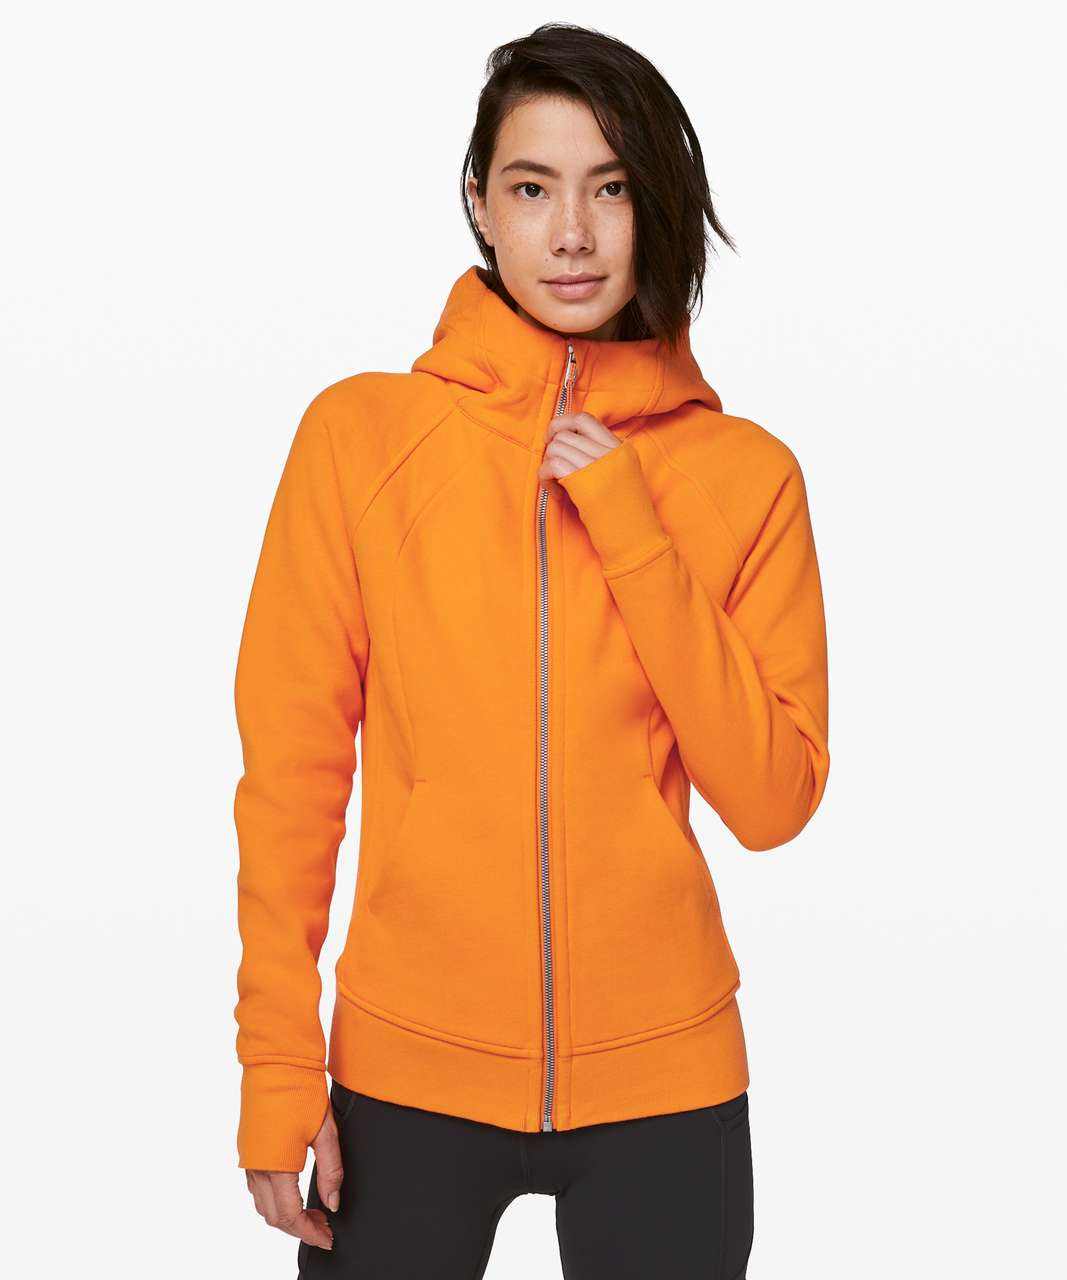 Lululemon Scuba Hoodie *Light Cotton Fleece - Vivid Amber